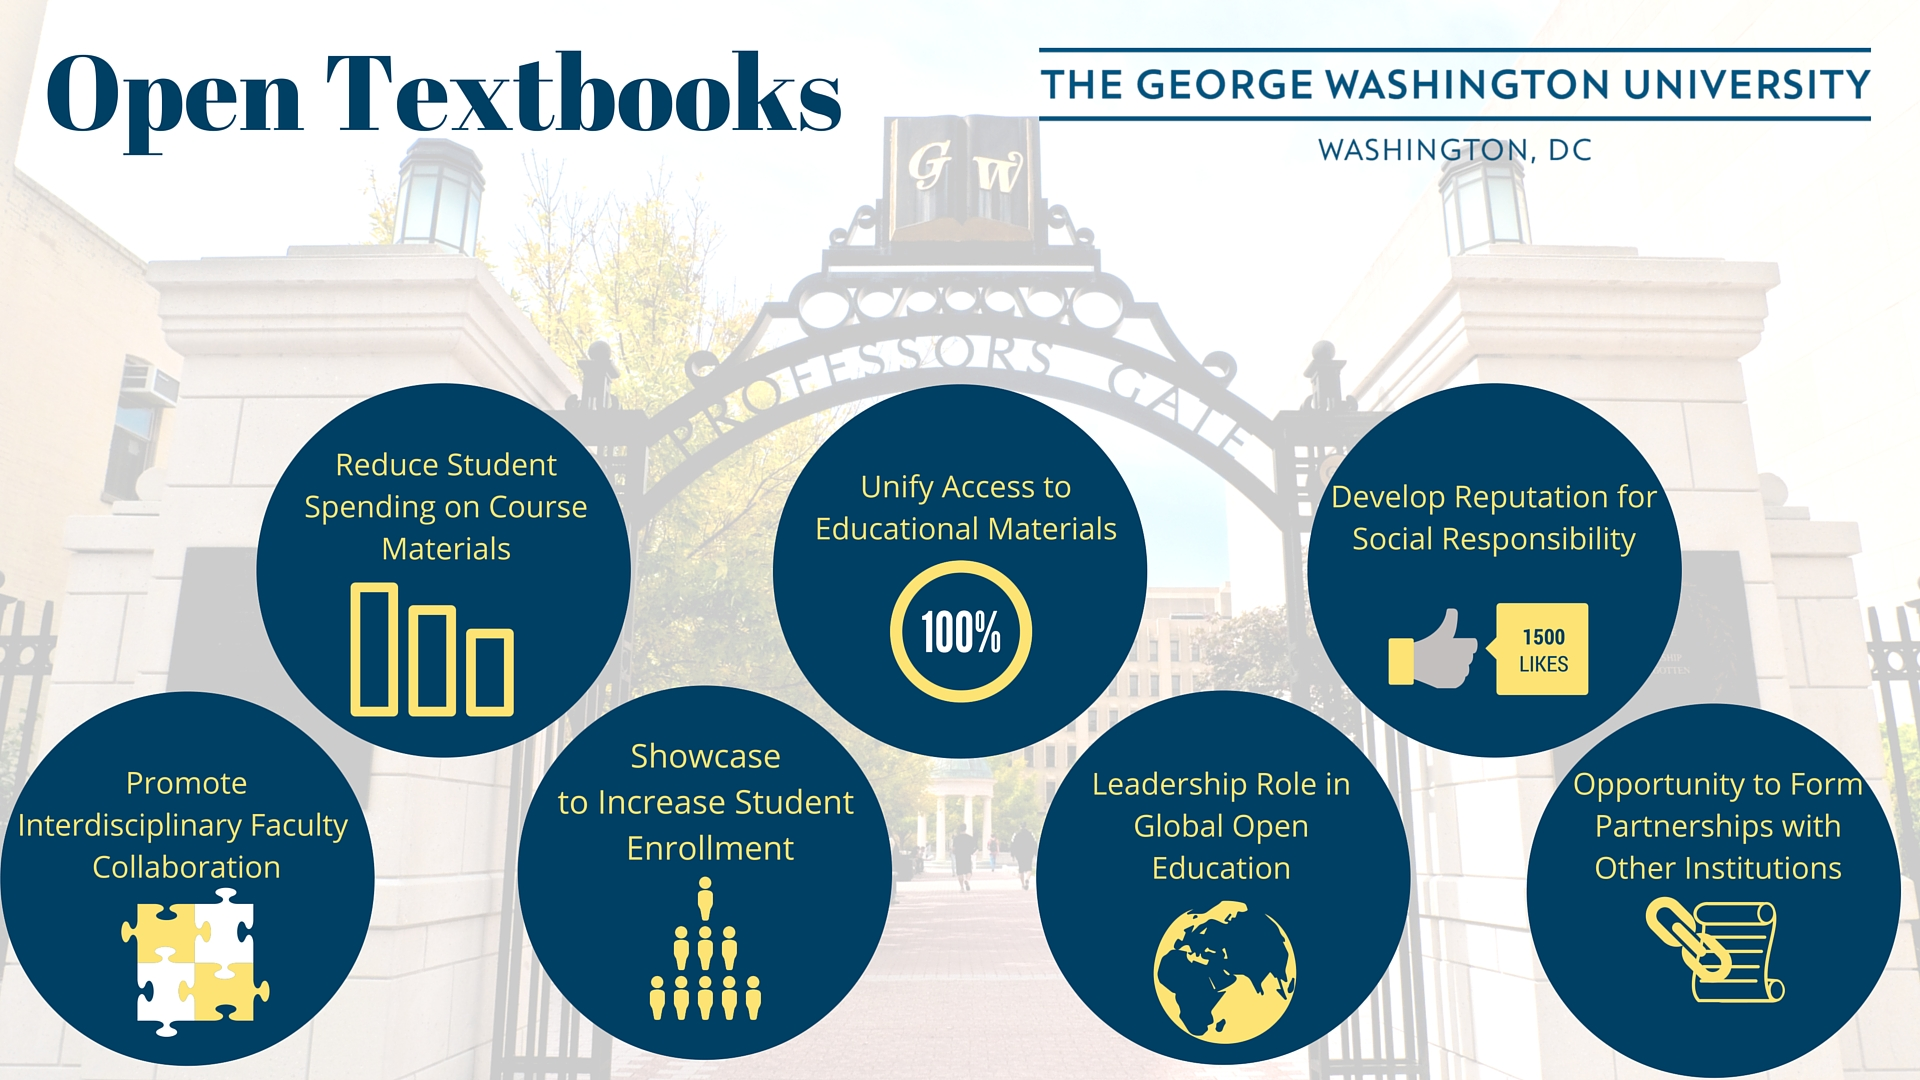 Image showing the benefits of using open textbooks